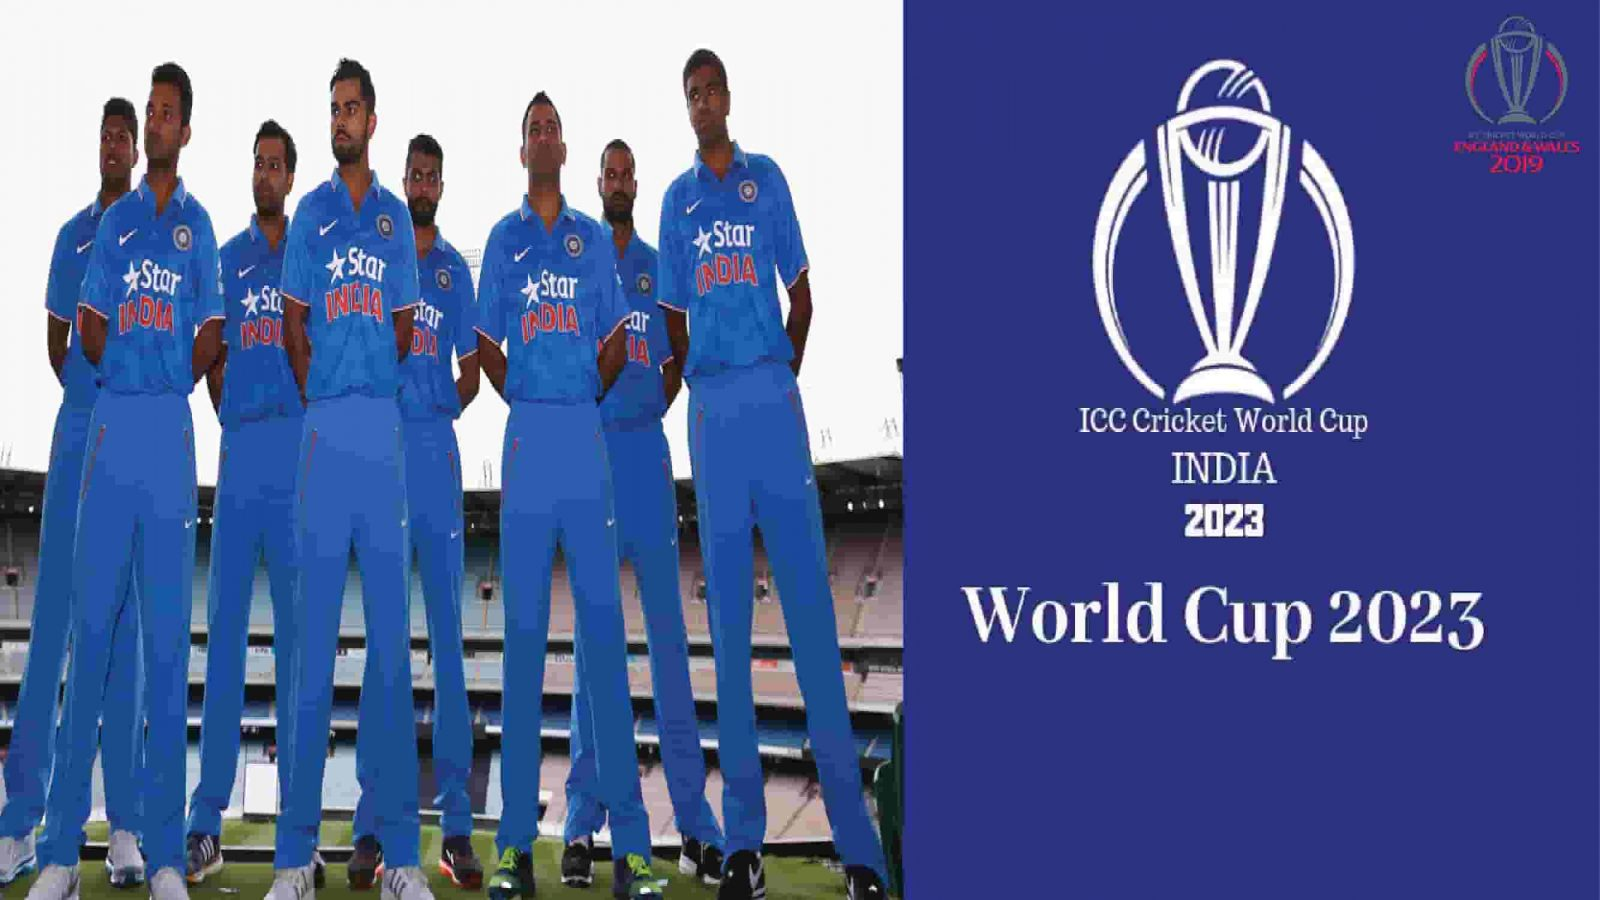 2023 cricket world cup